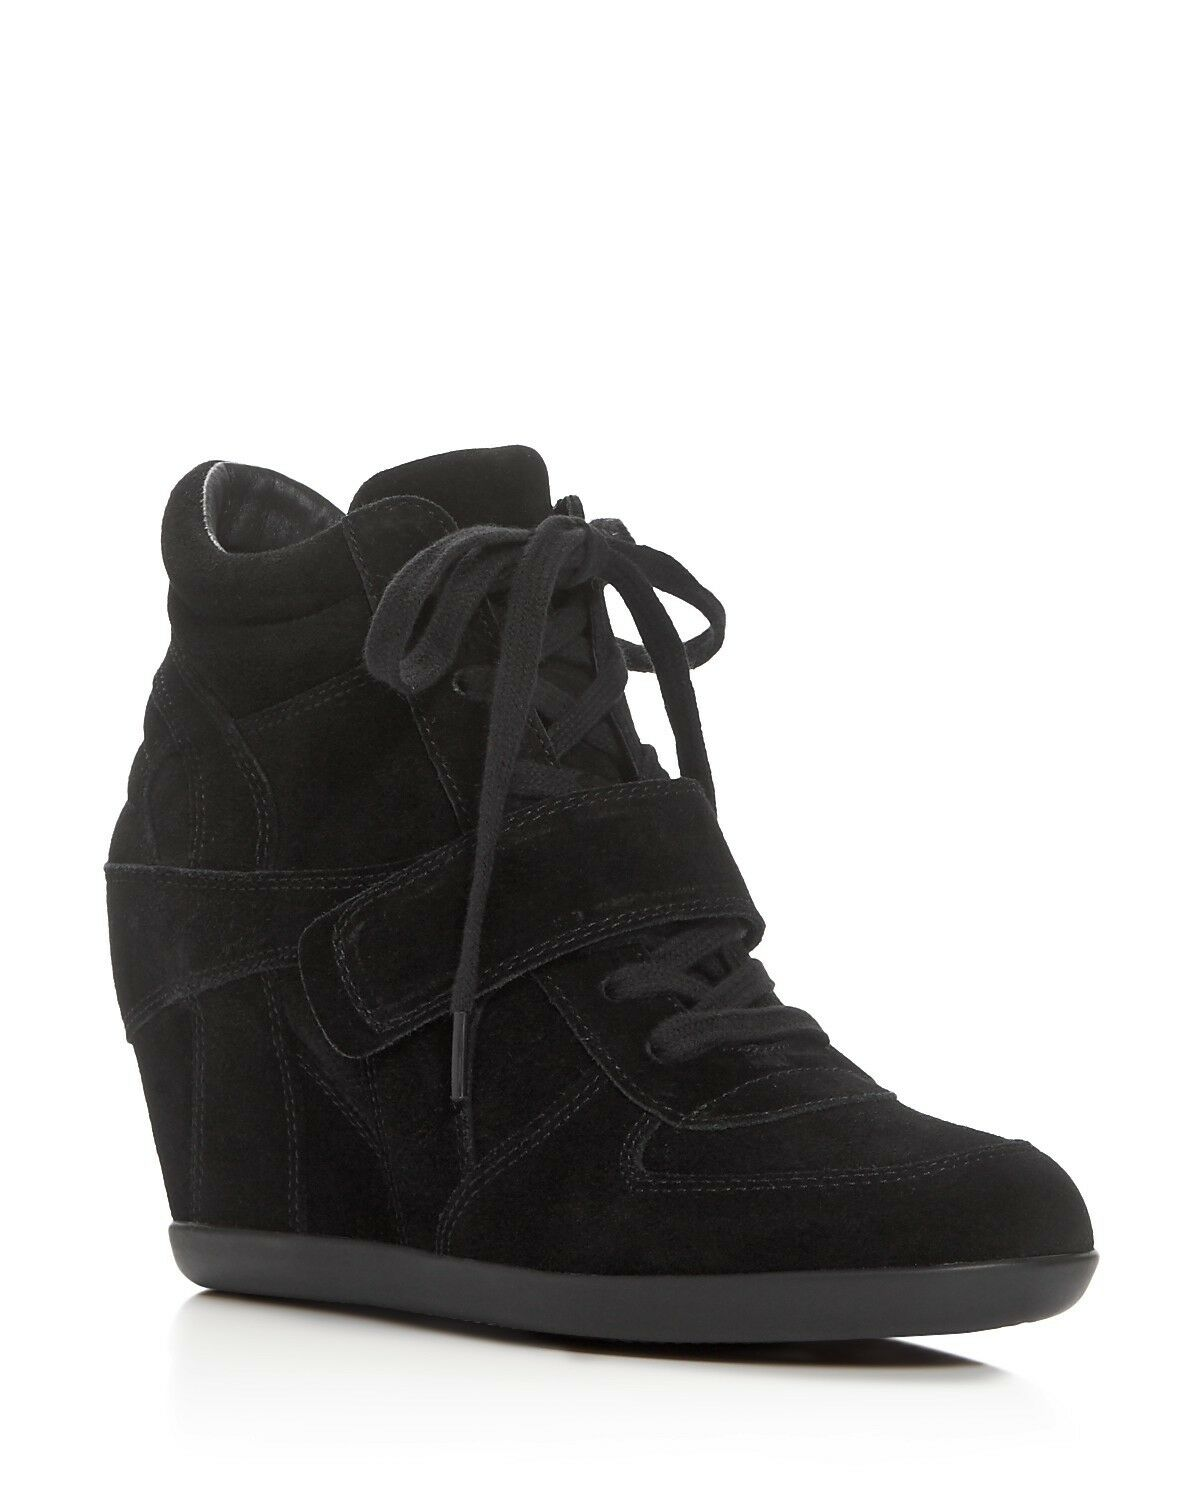 ASH Women Women Women Bowie black High Top Wedge Heel Sneakers Lace Up shoes Ankle Bootie 35a77d